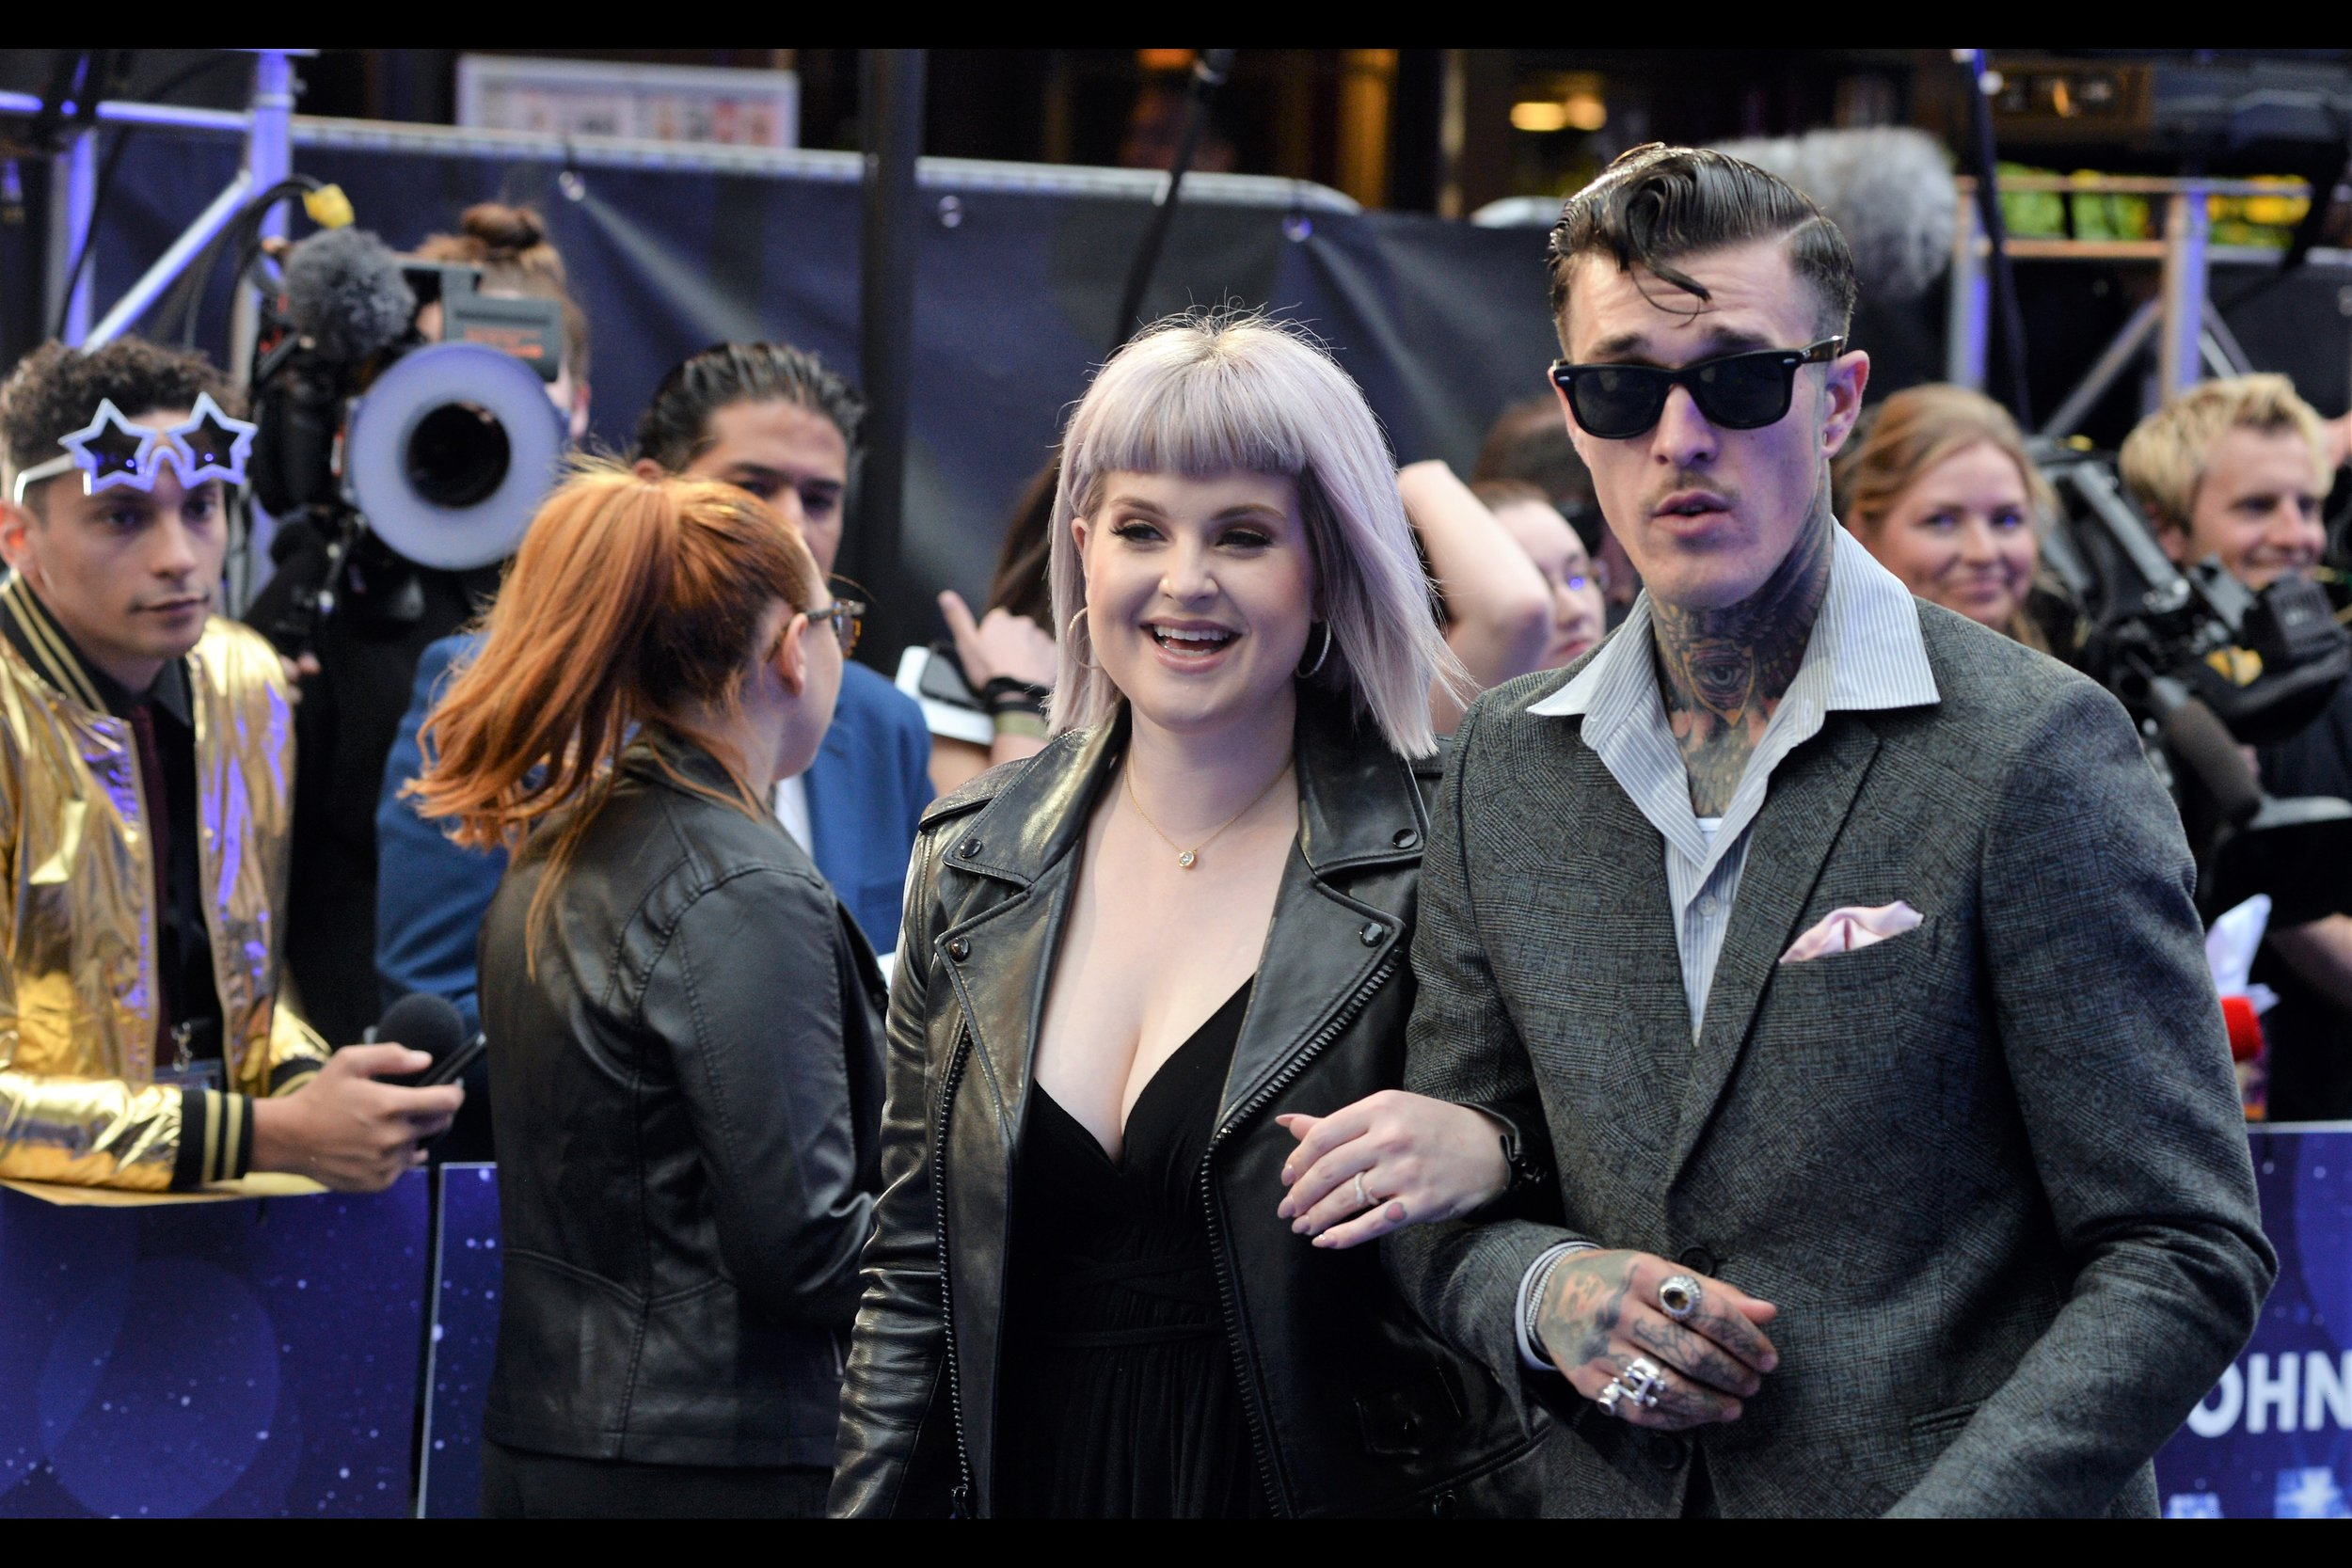 This is Kelly Osbourne (left), and for the life of me I can't remember whether she parlayed that early '000s reality TV show she was in into a singing career, modeling career, or what. But the guy with the star-struck glasses in the background left : you know he's building up to a level of fame that will last for Decades Glorious.